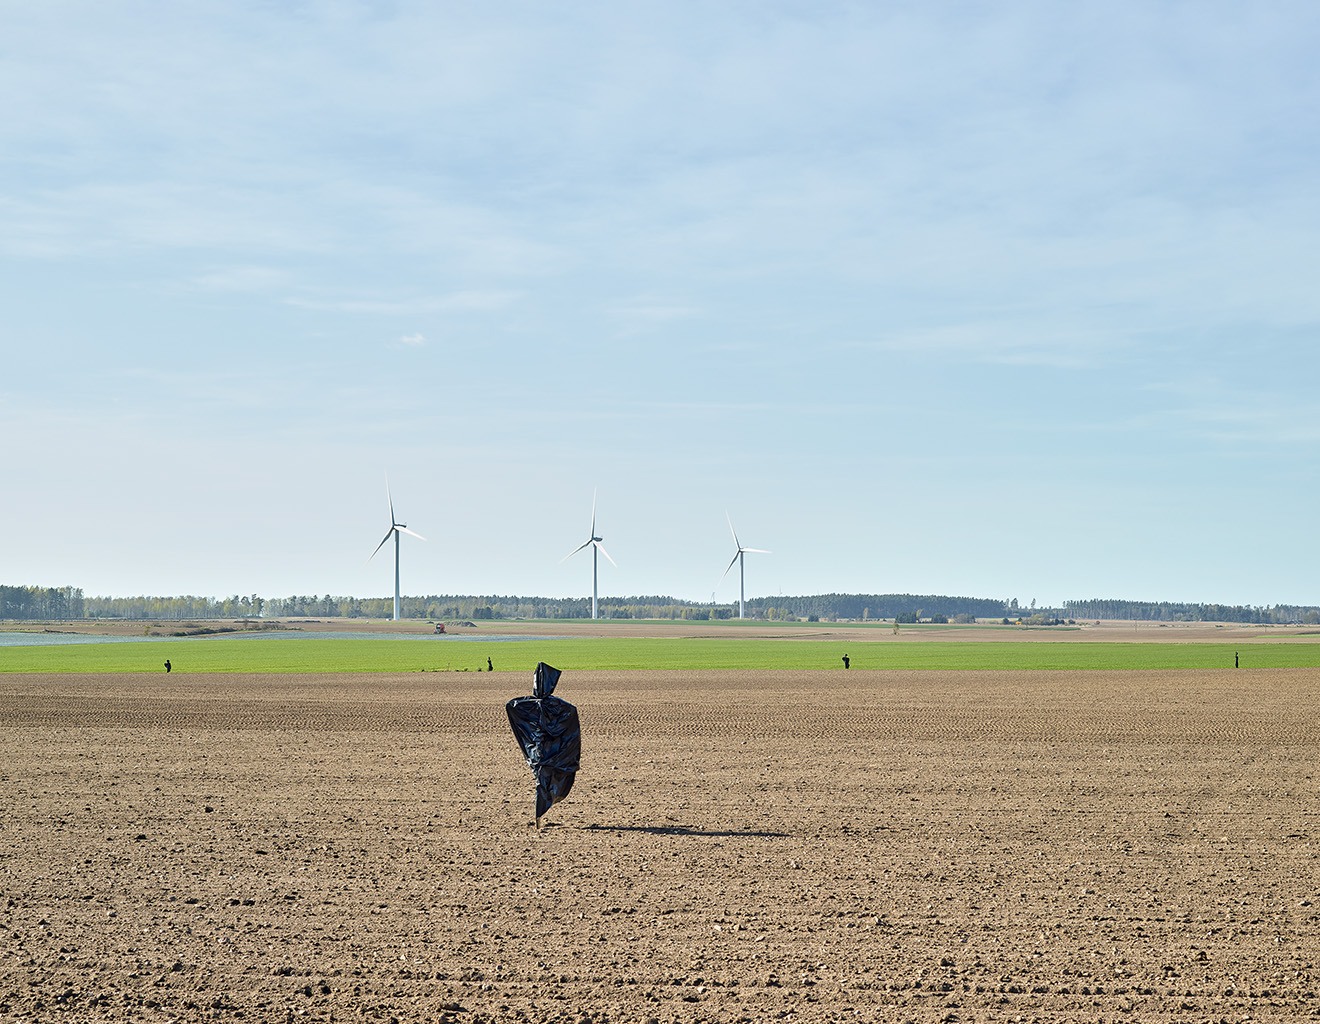 Kiaby, Skåne, April 22, 2015